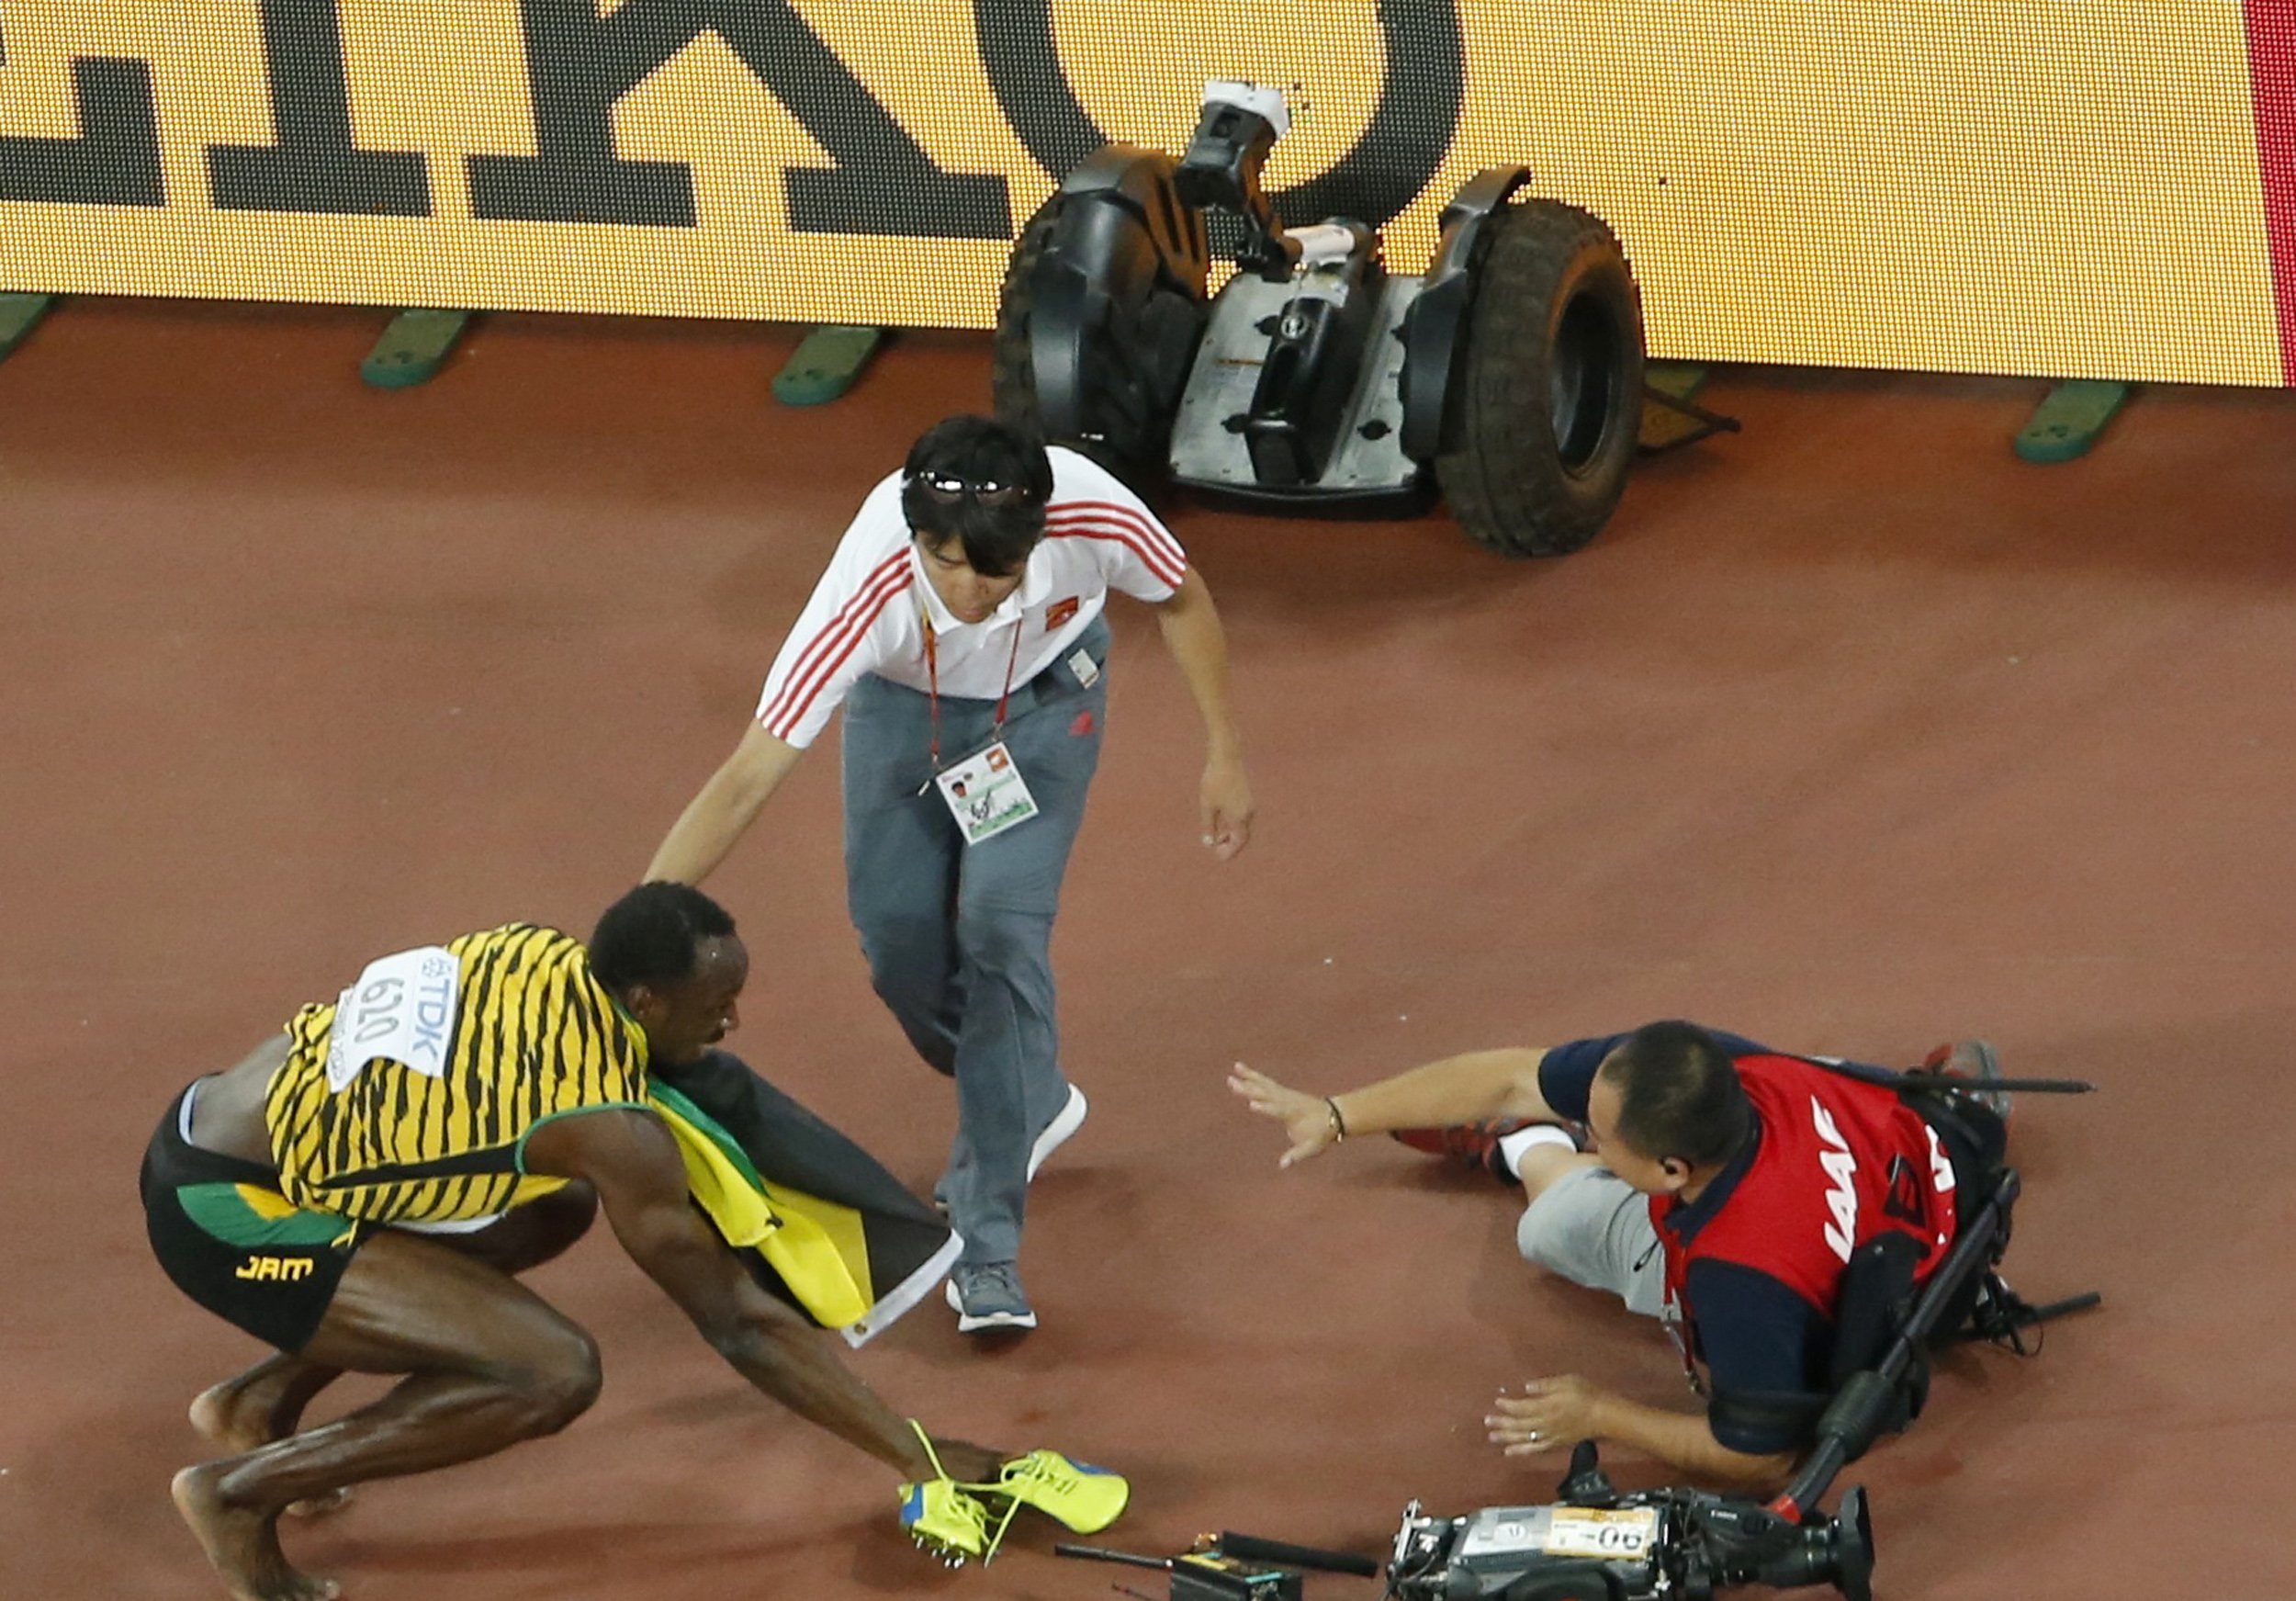 Usain Bolt vs Segway